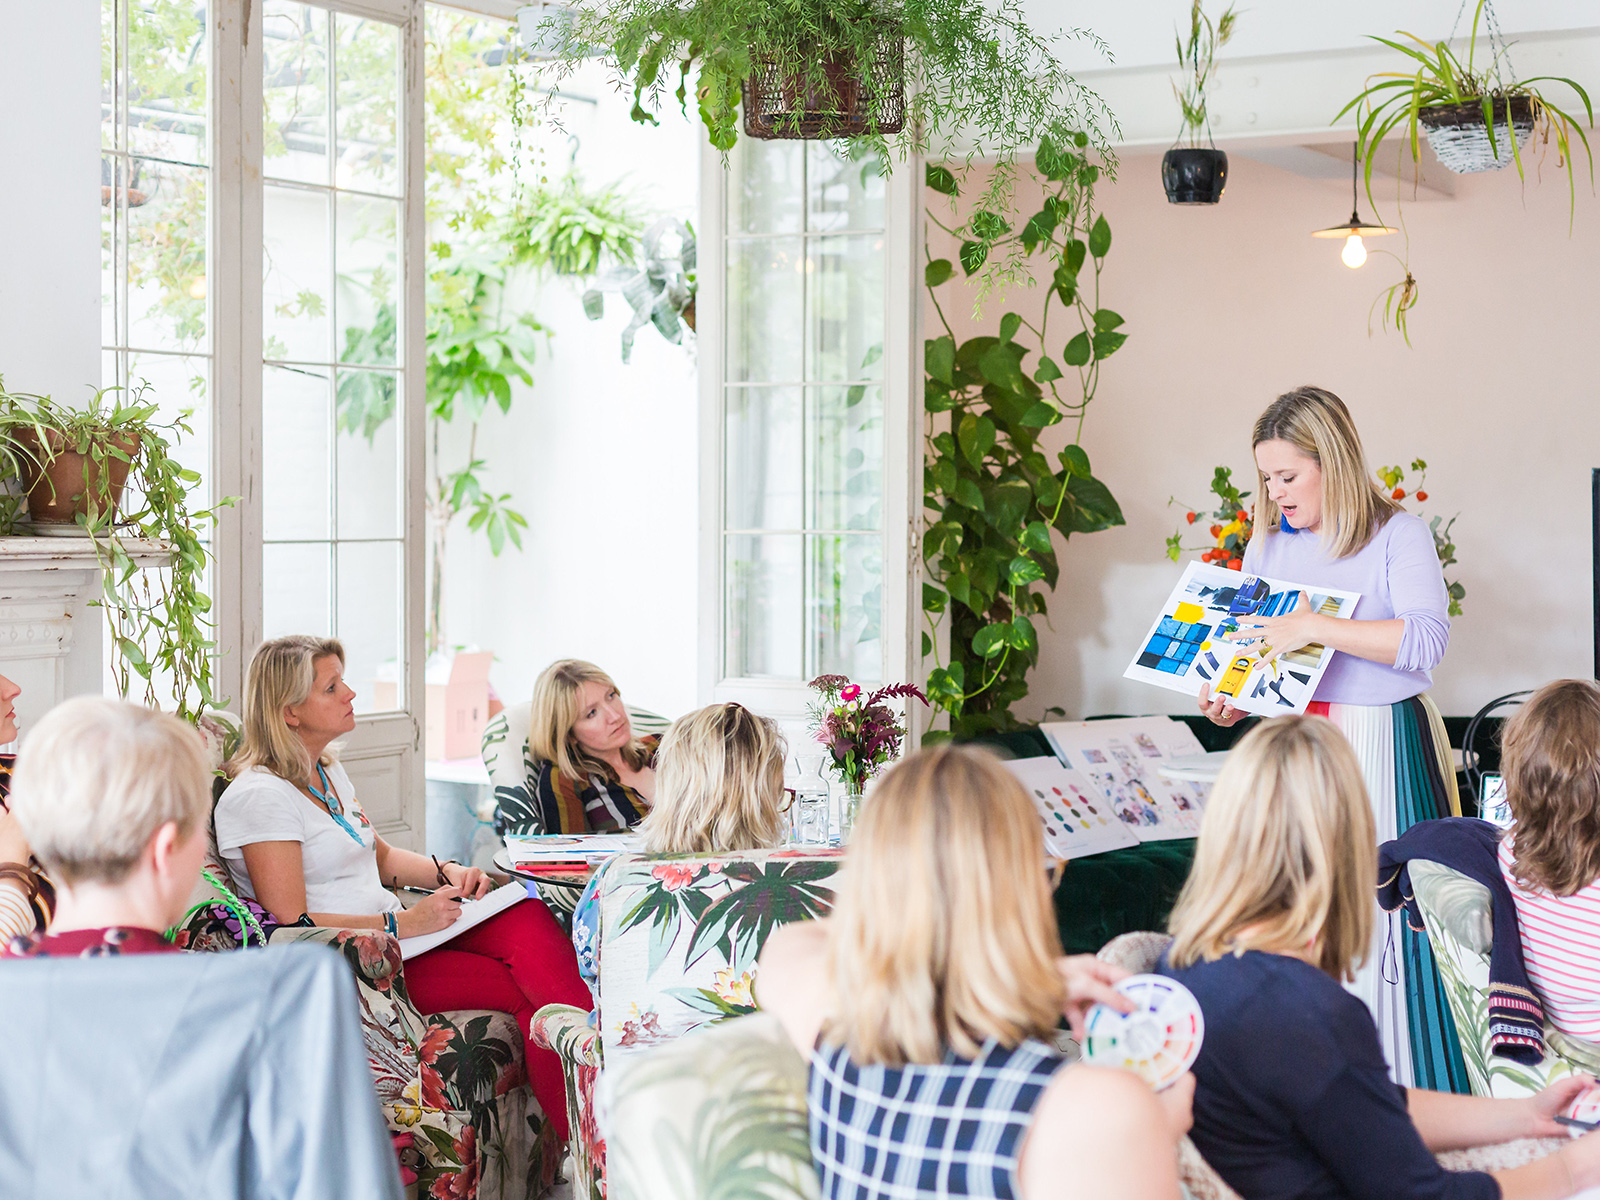 interior designer sophie robinsons hosts inspirational interior design worksops, to help people colour scvheme and renovate their home with ease